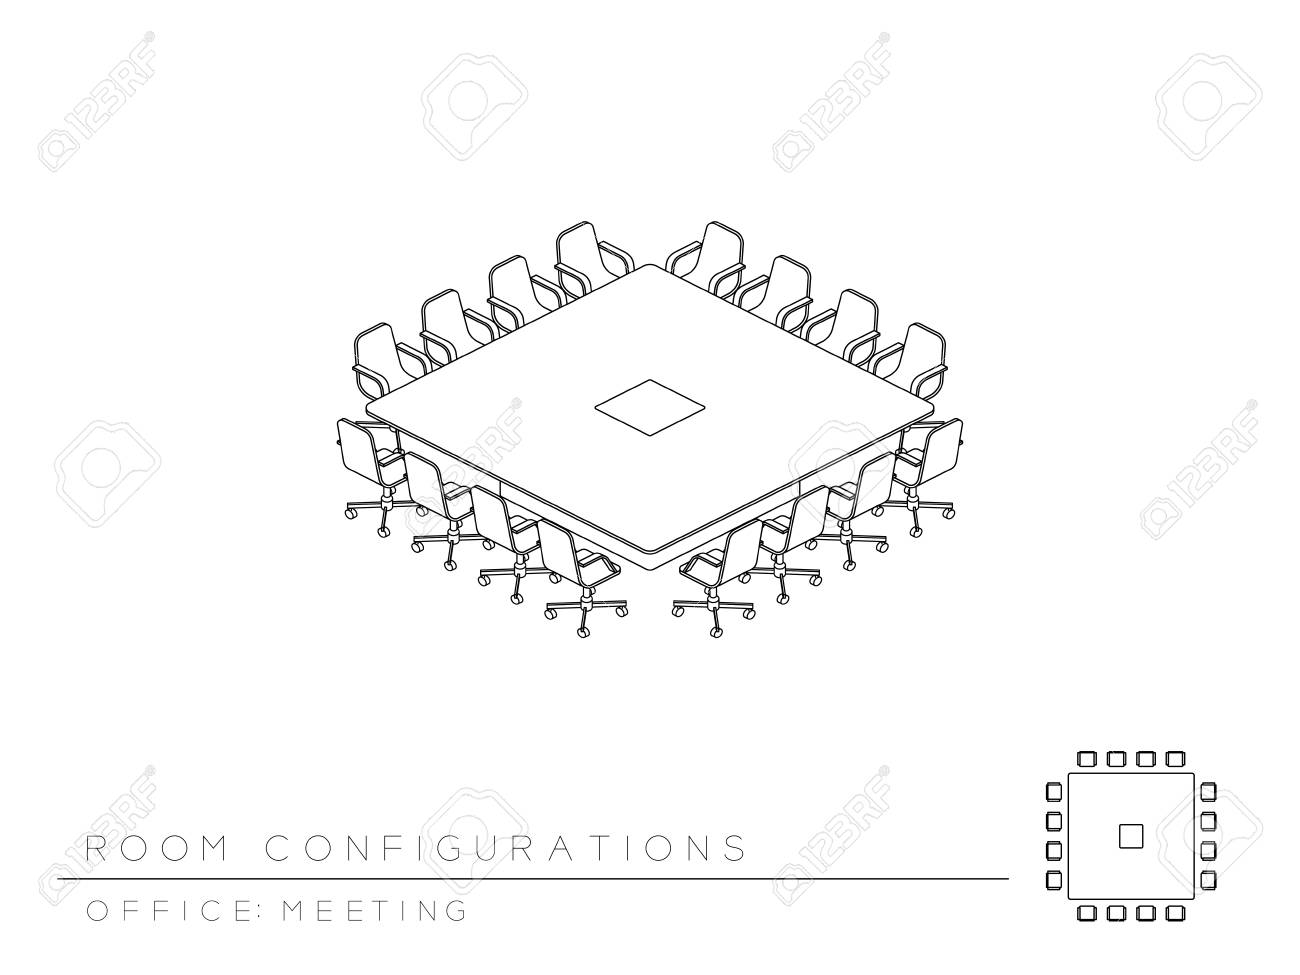 hight resolution of meeting room setup layout configuration conference square boardroom style perspective 3d isometric with top view